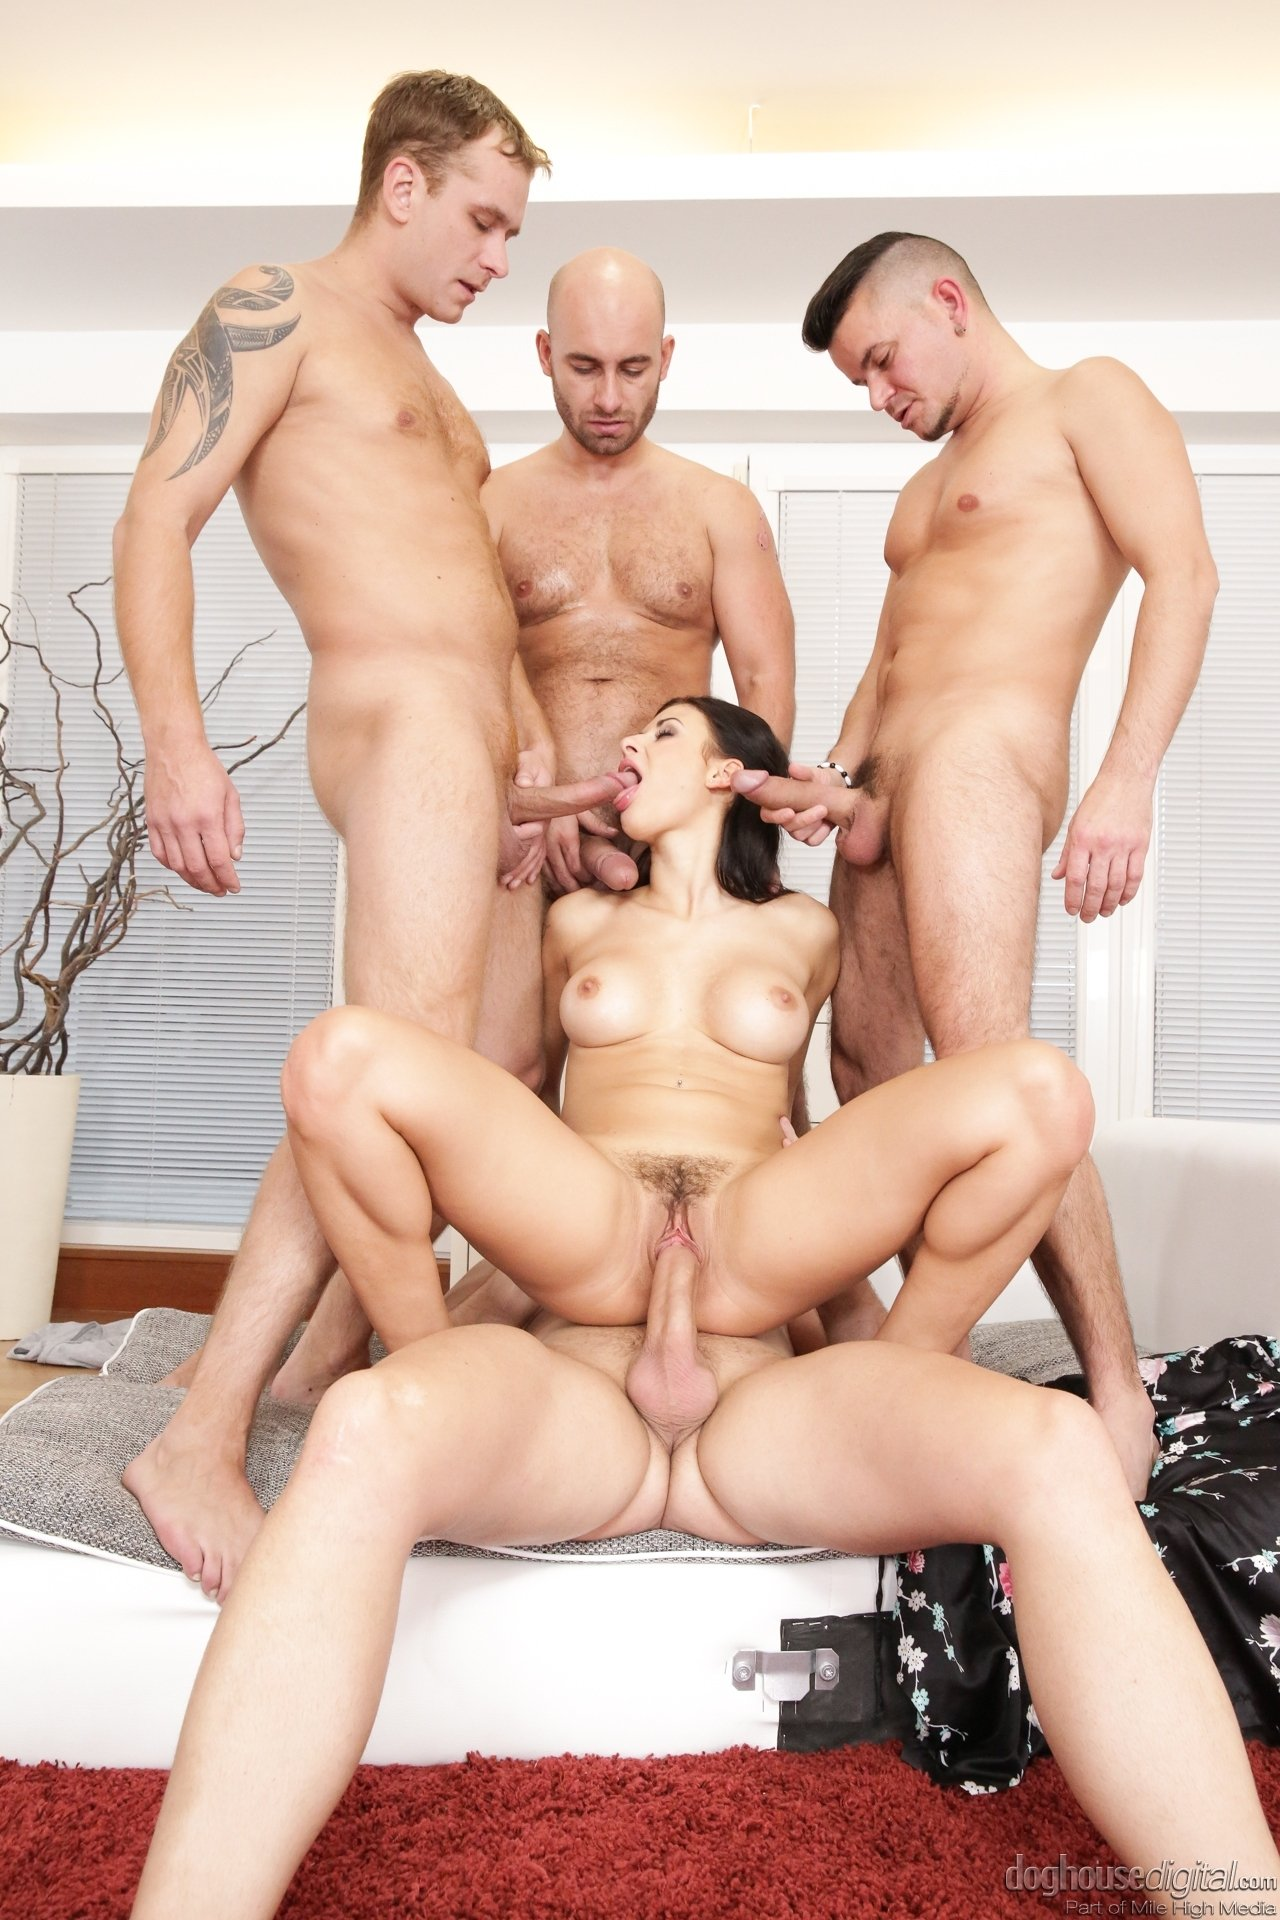 Chat free transsexual #1